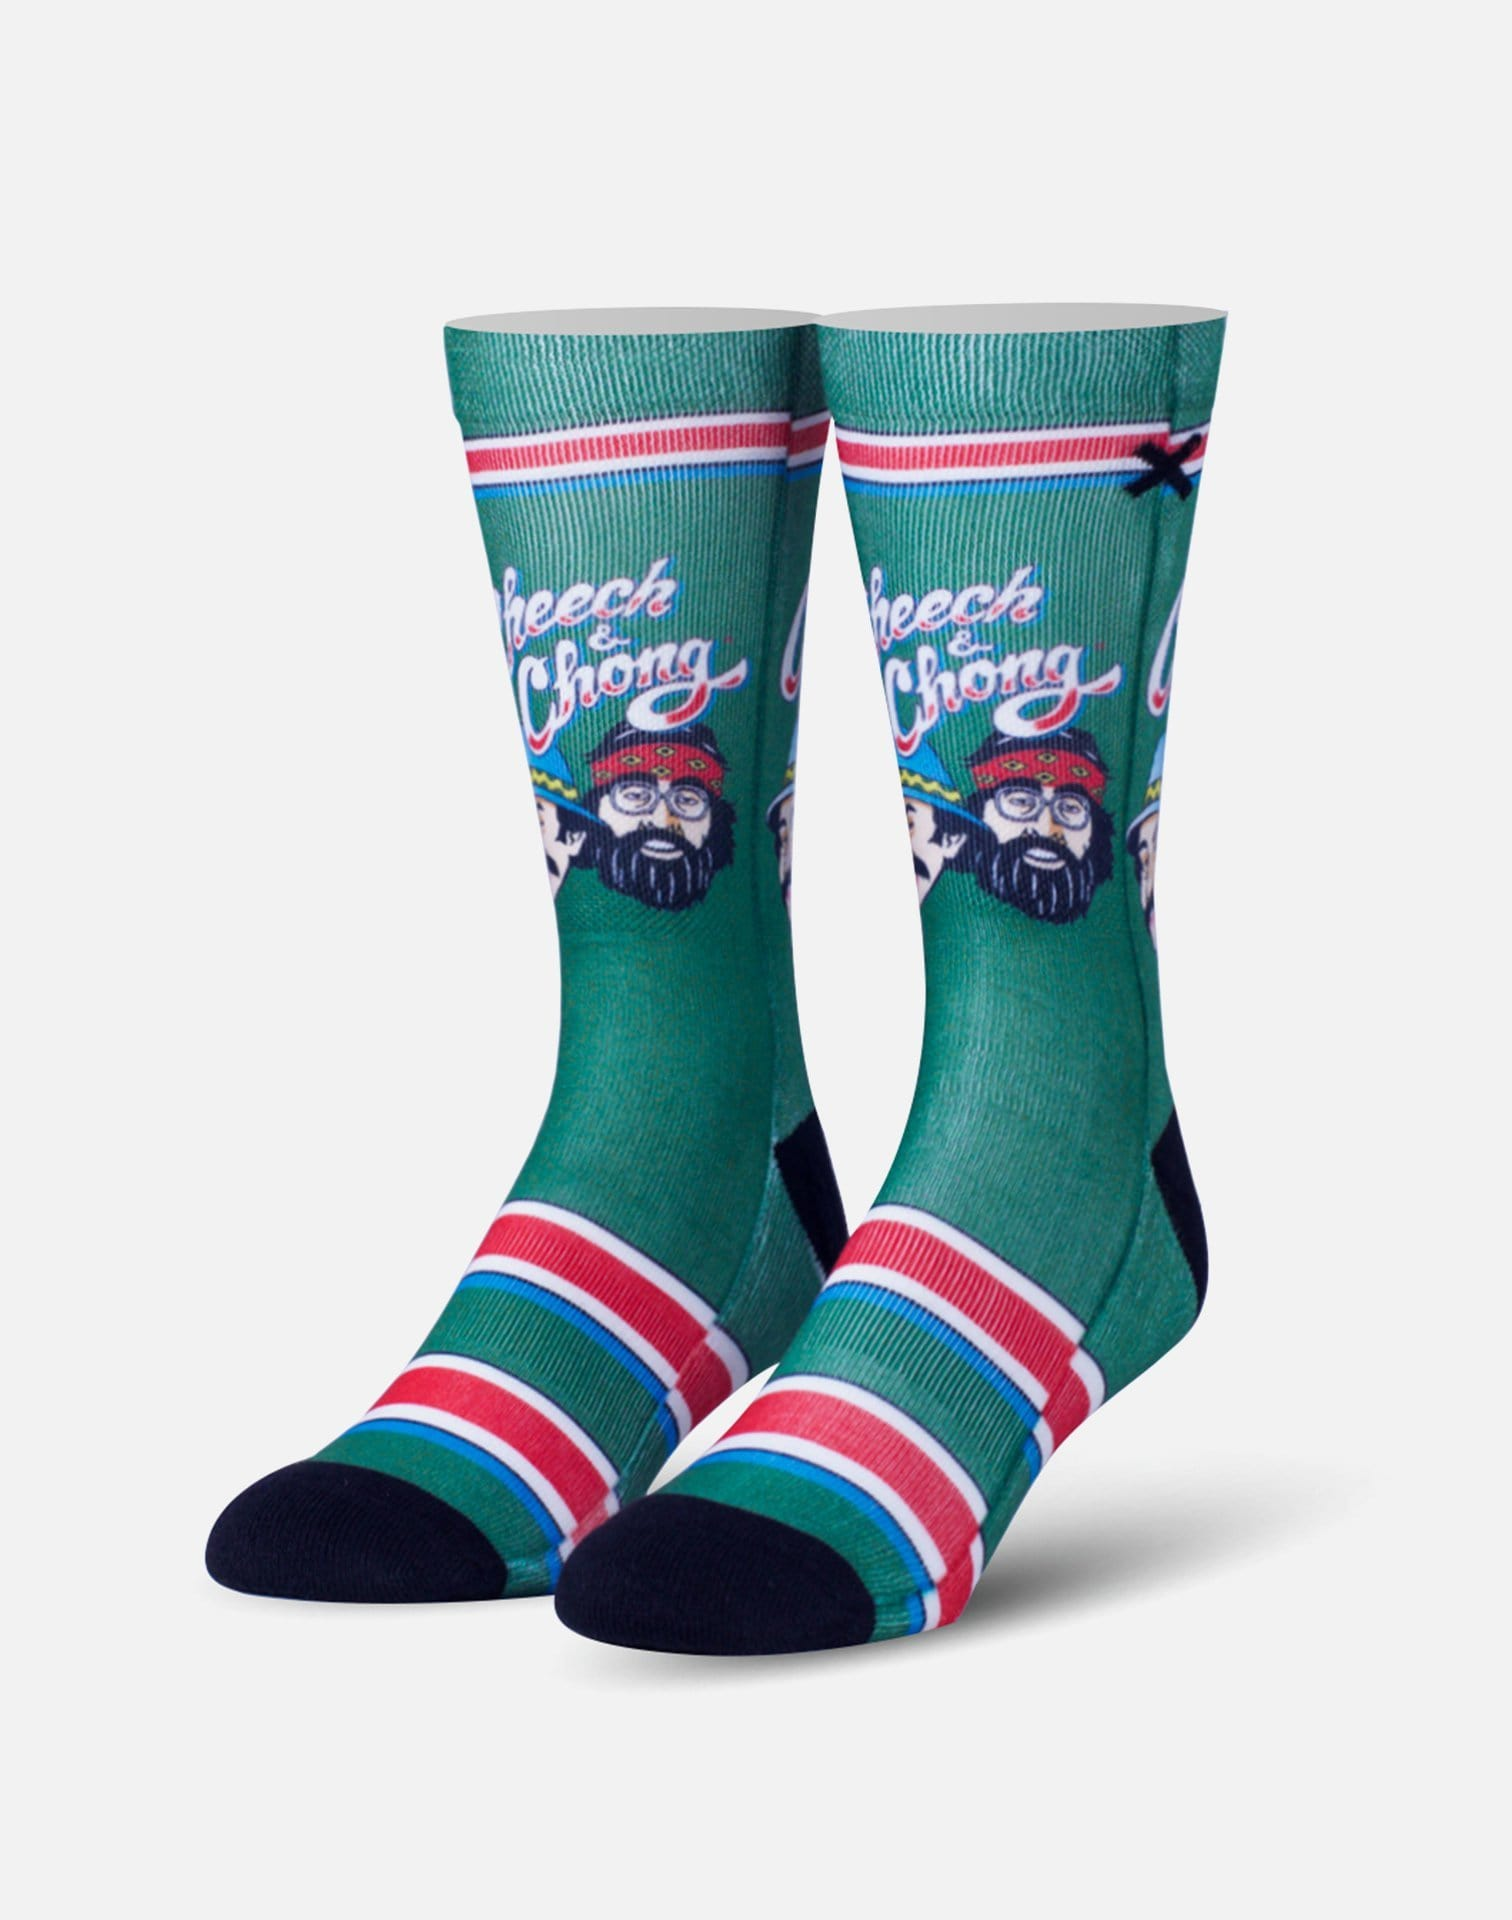 Odd Sox Cheech & Chong Retro Socks